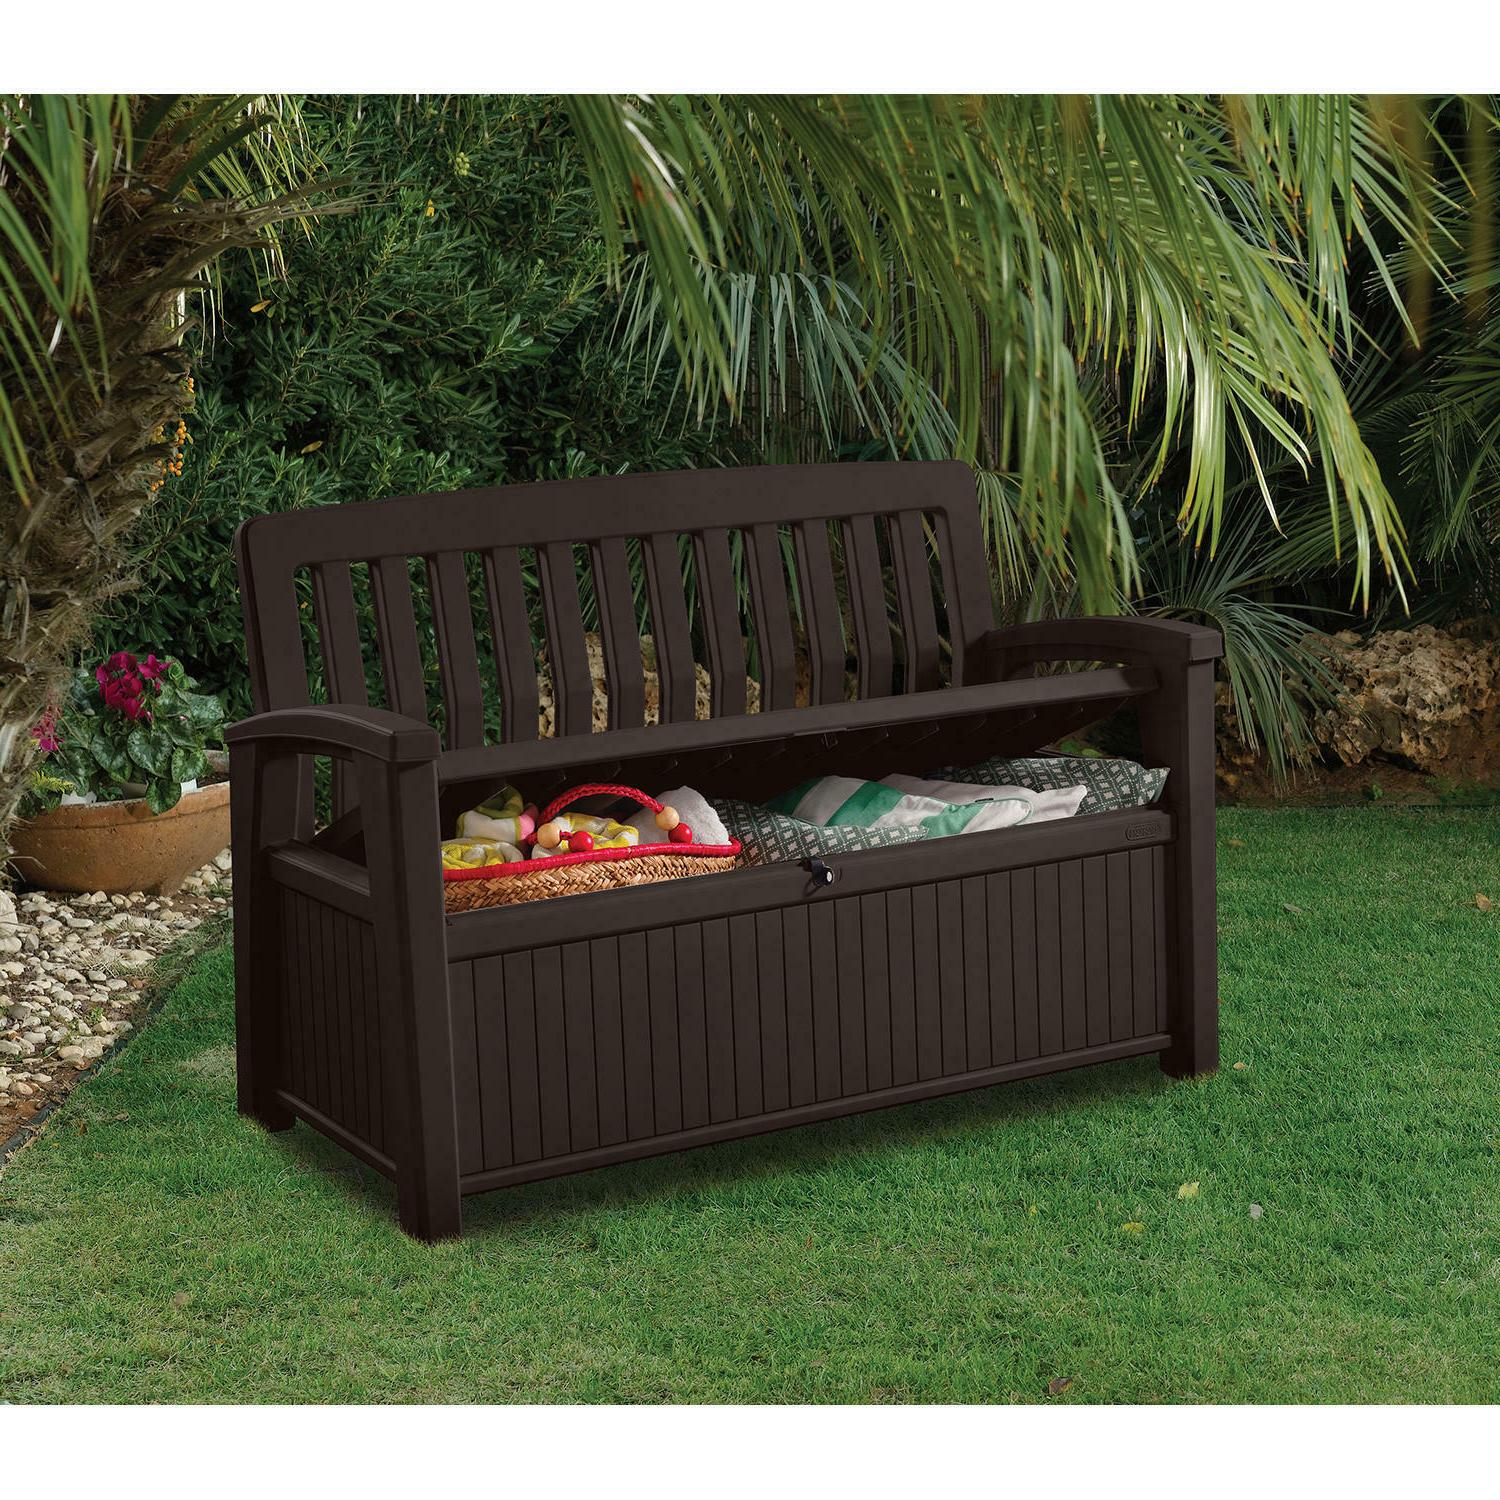 Keter box All-Weather Outdoor Patio Bench